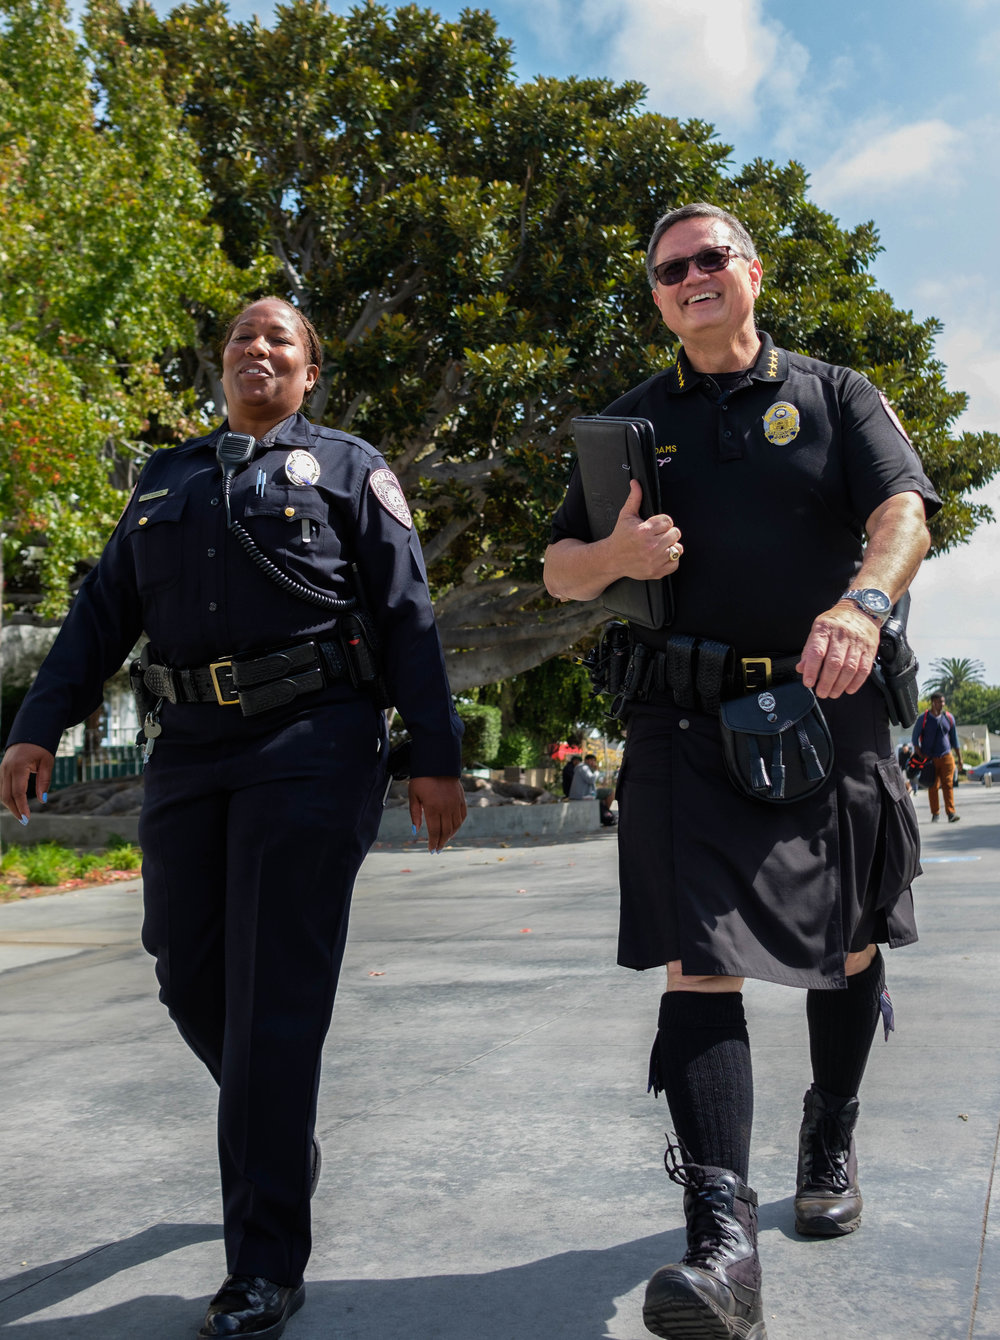 Chief of Police, Johnnie Adams (RIGHT) and Officer Patterson (LEFT) walk through the Santa Monica College Quad in Santa Monica, CALIF on October 3rd, 2017. Photo by: Jayrol San Jose